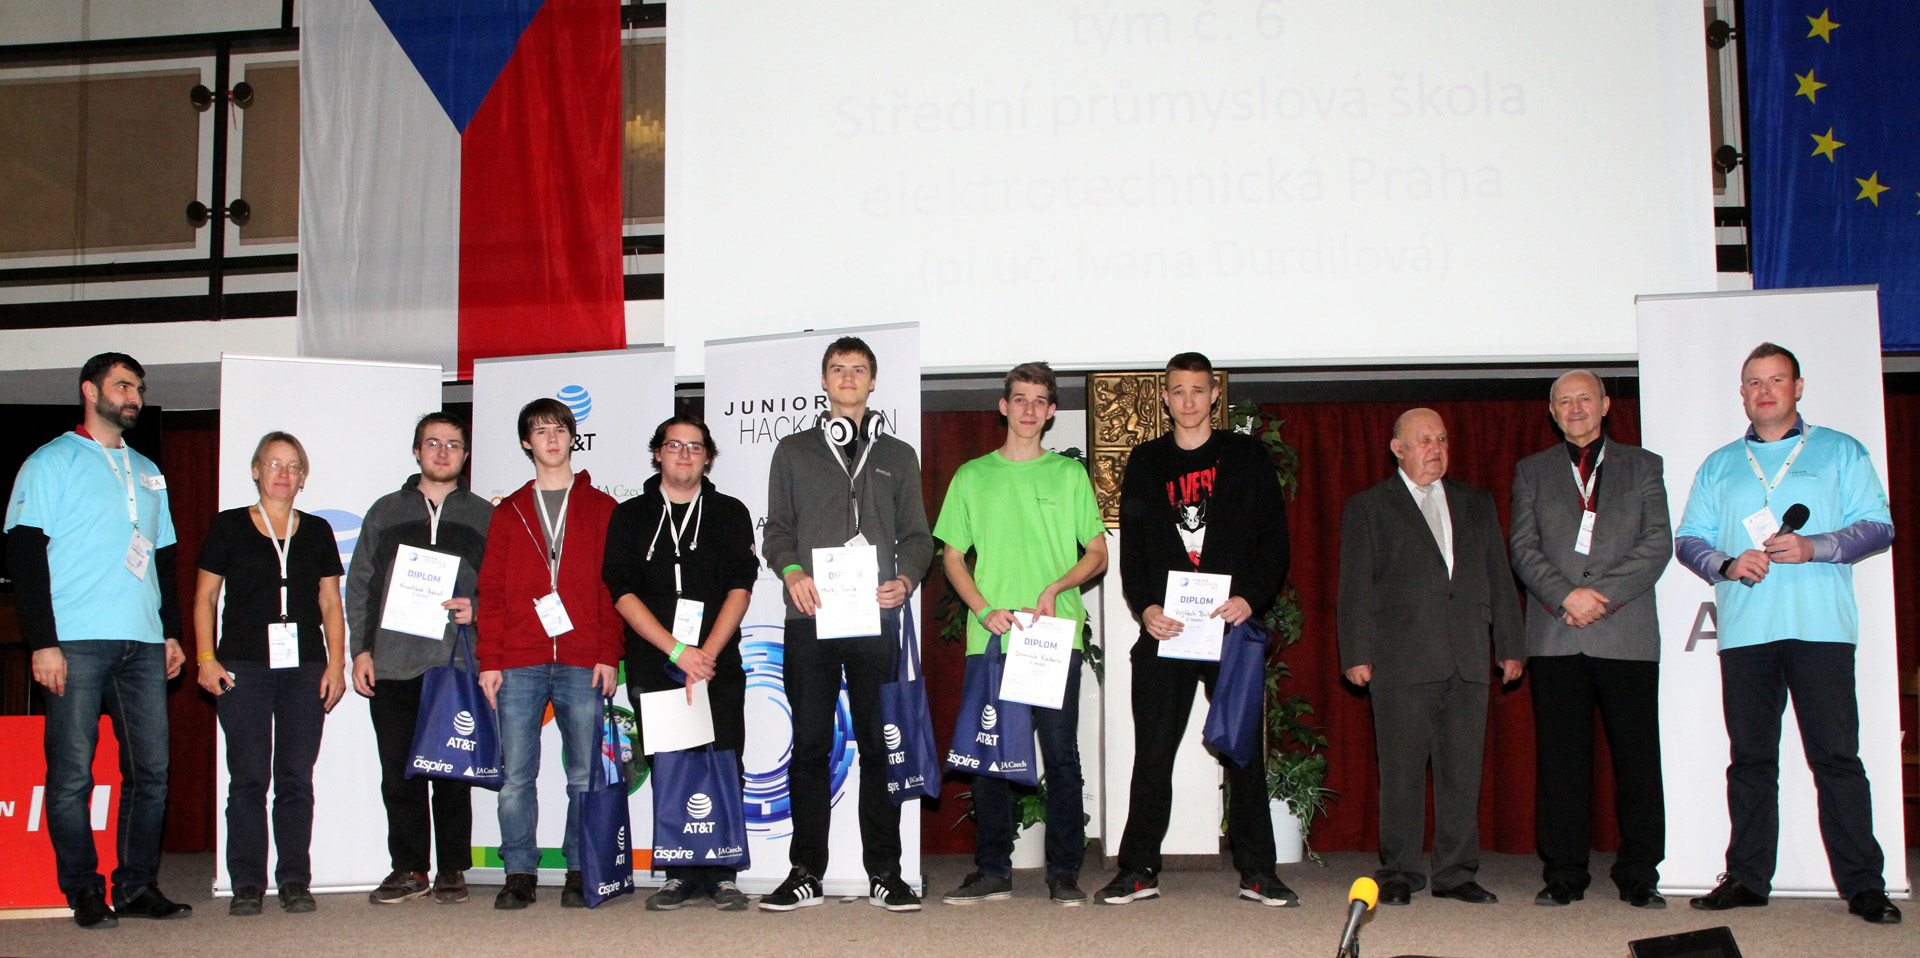 Junior Hackathon 2016 Brno 2nd place winners